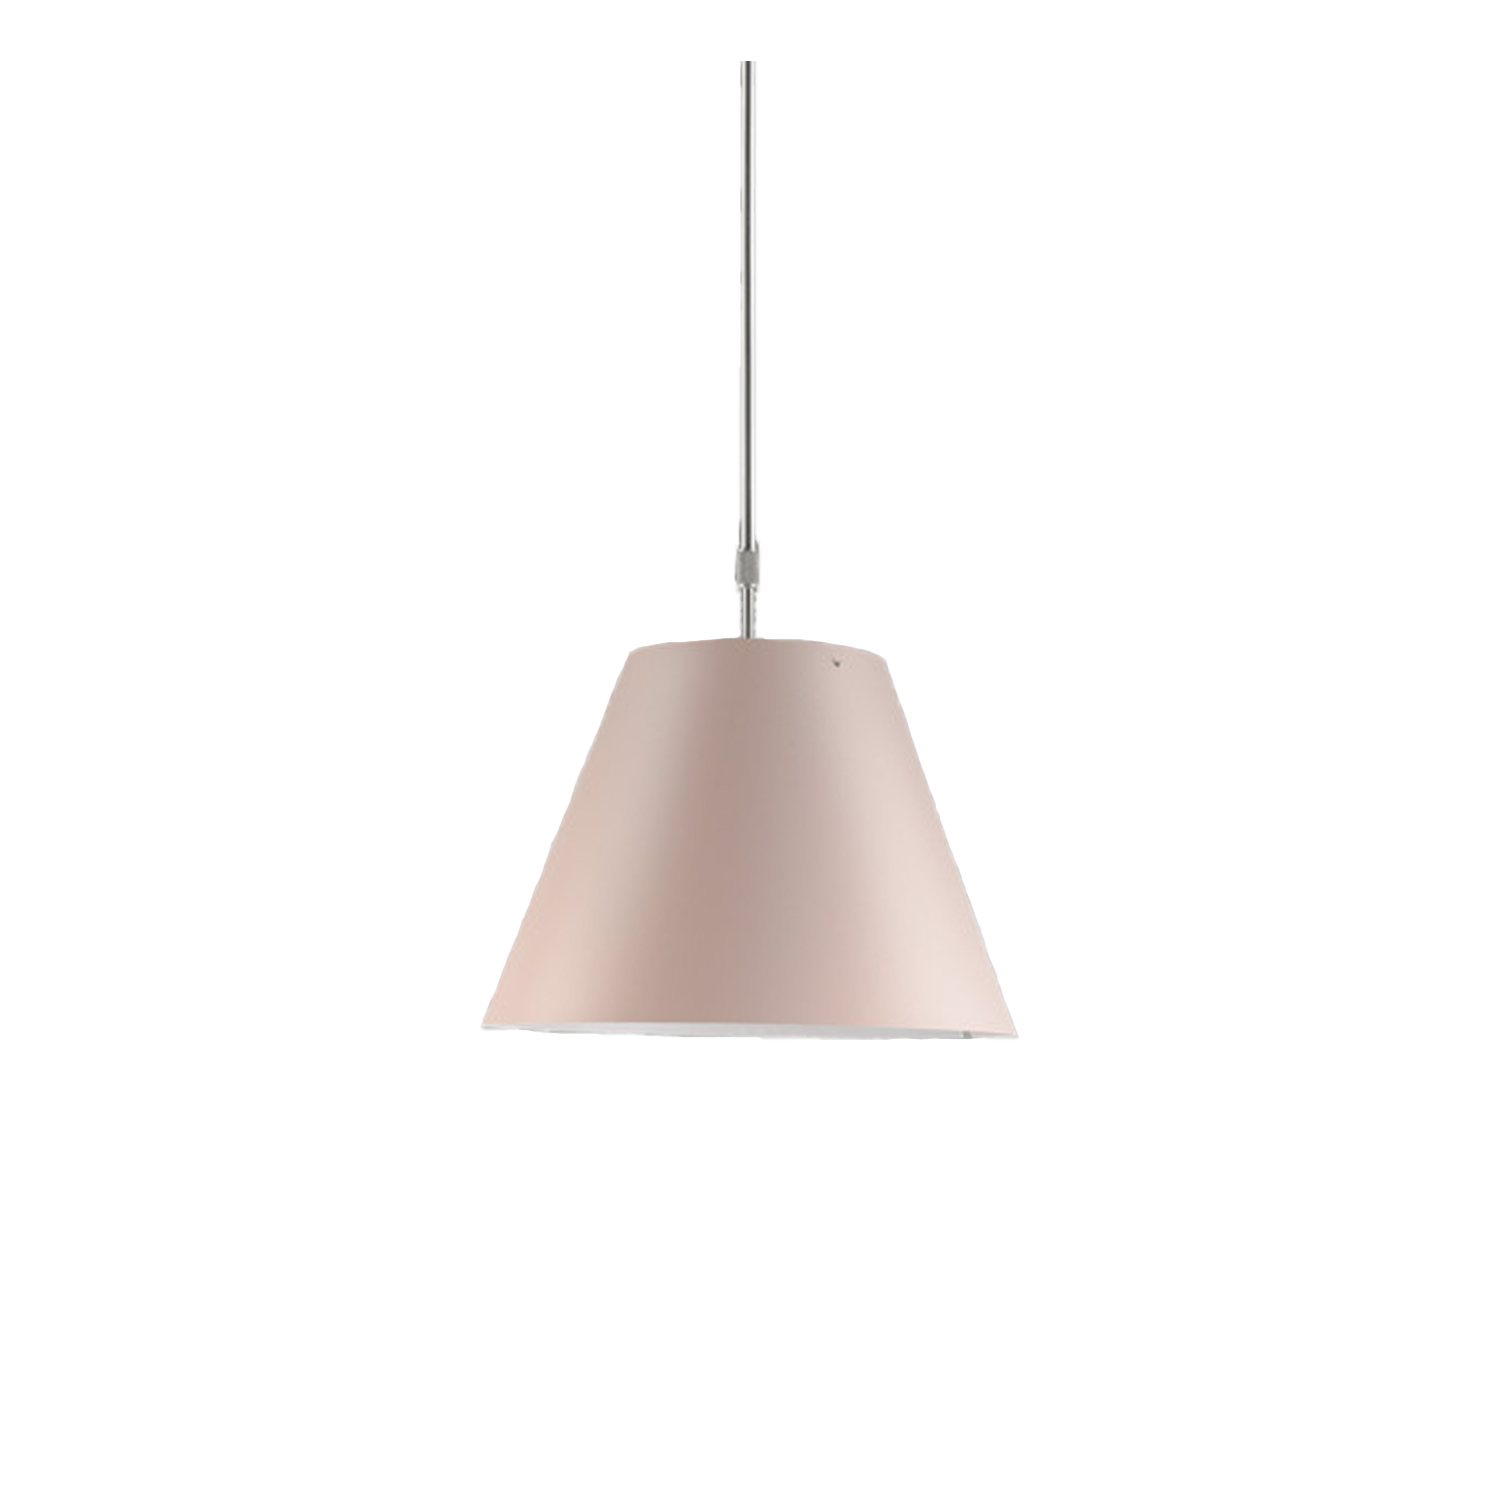 Costanza Suspension Telescopic Lamp -  Elegant and light, this lamp emits a pleasant warm light through a silk-screened polycarbonate shade. The lamp's height may be adjusted by means of a characteristic steel counterweight.  LED technology has made it possible to update Costanza while keeping its inimitable characteristics: high performance in terms of diffuse lighting and visual comfort  | Matter of Stuff